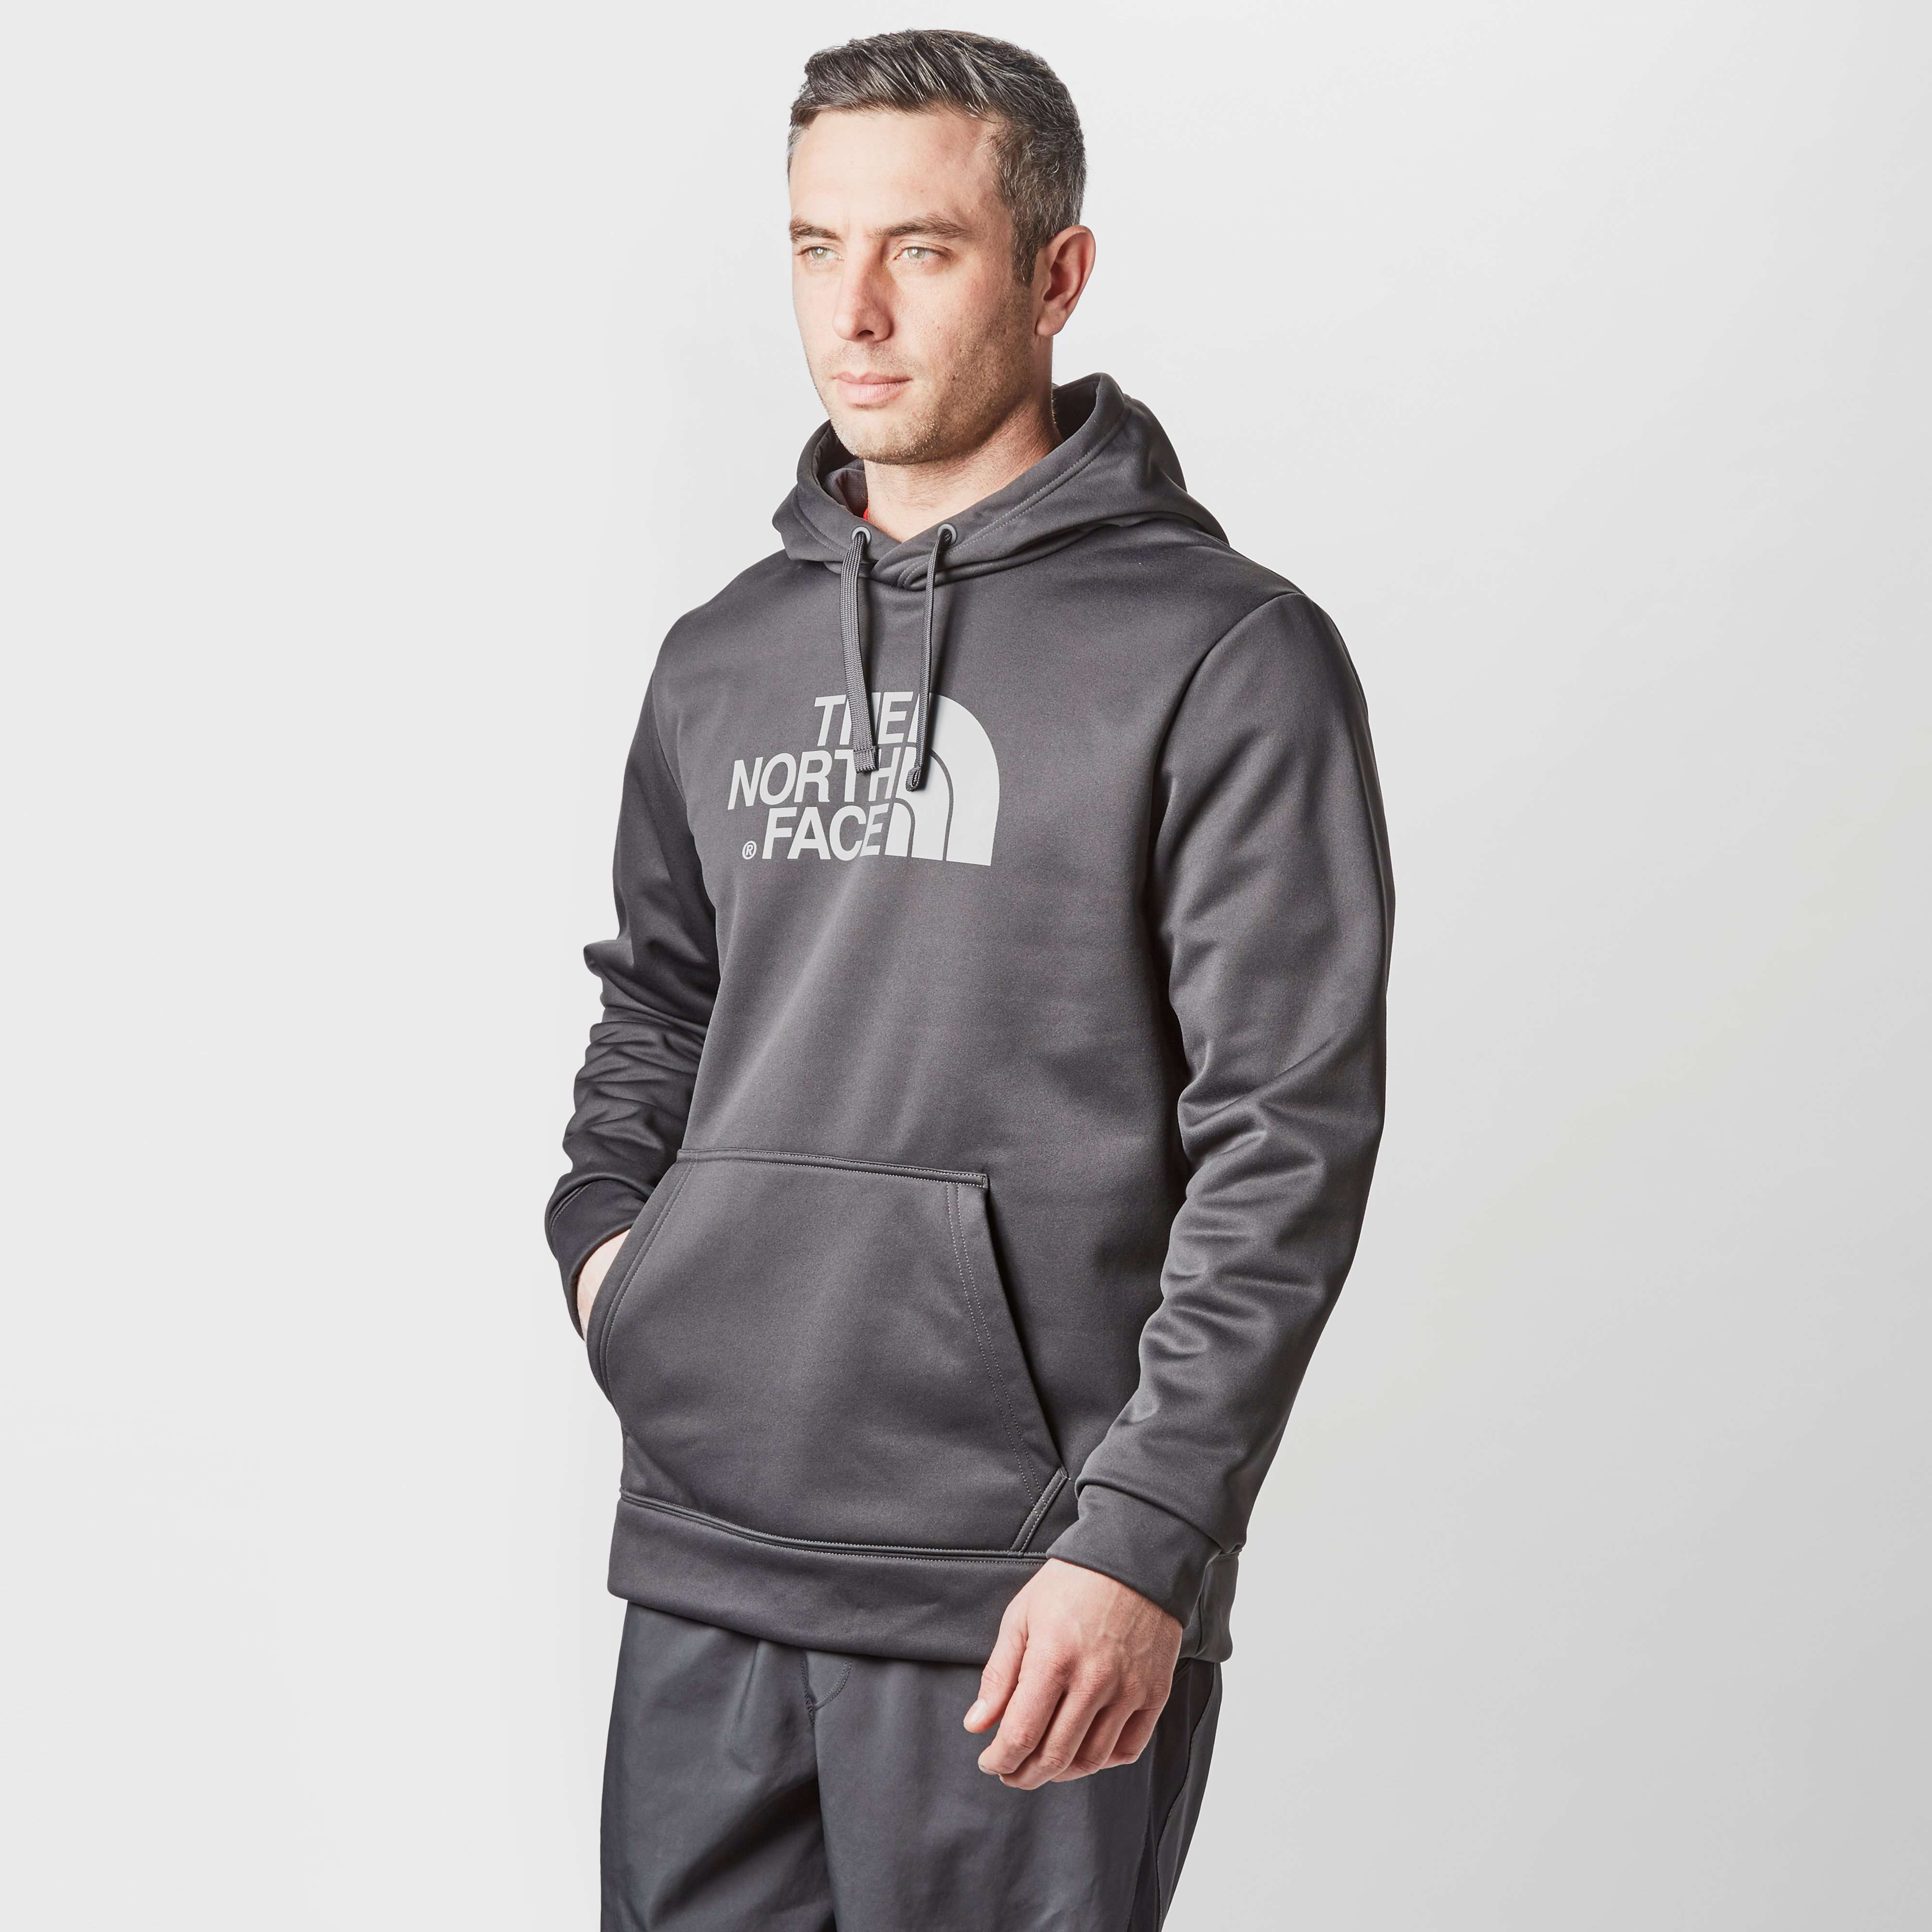 THE NORTH FACE Men's Mountain Athletics Surgent Halfdome Pro Hoodie